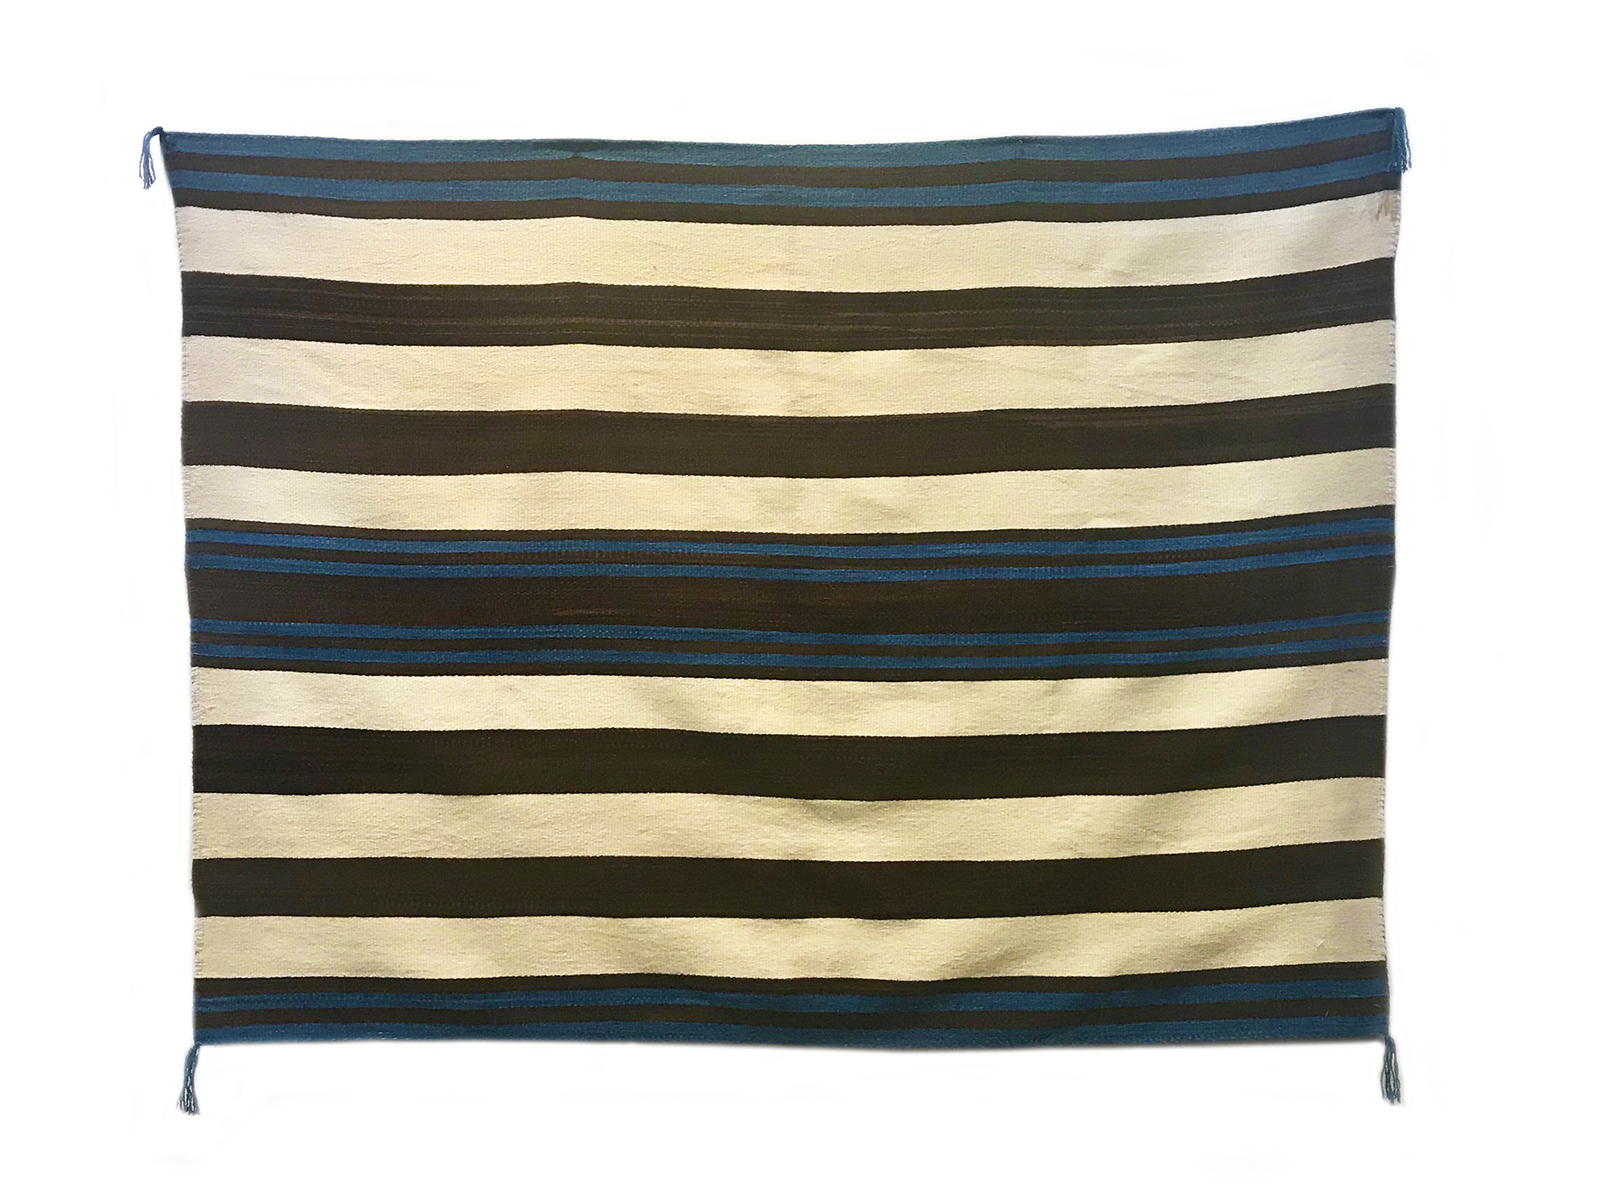 Contemporary Navajo Weaving: First Phase Chief's Blanket, 4'3